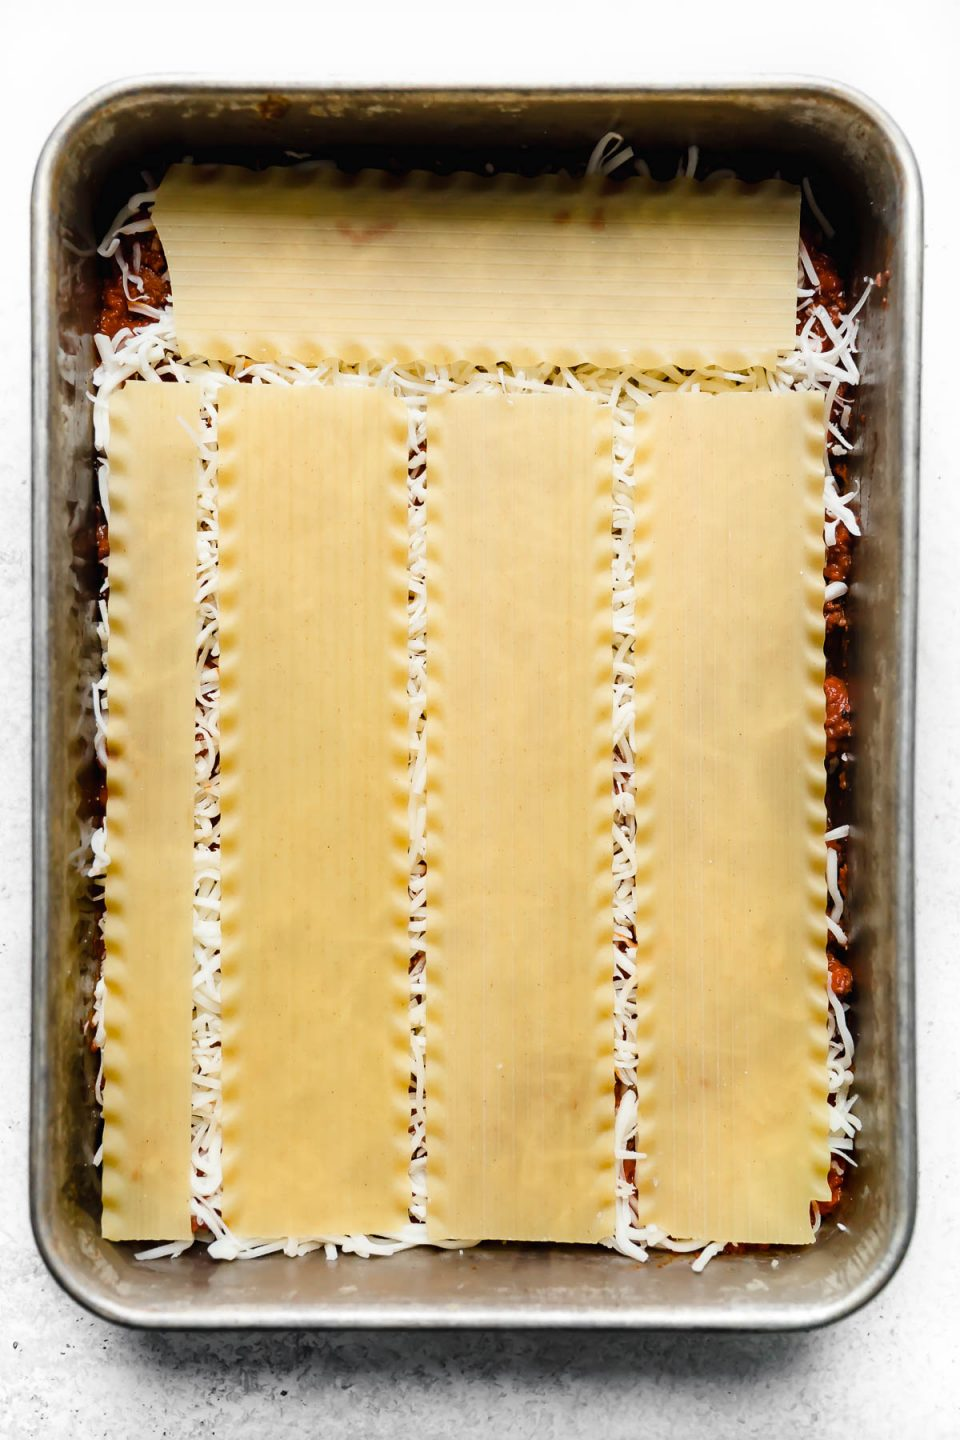 How to assemble & layer lasagna: adding a layer of no-boil pasta noodles to the baking dish.